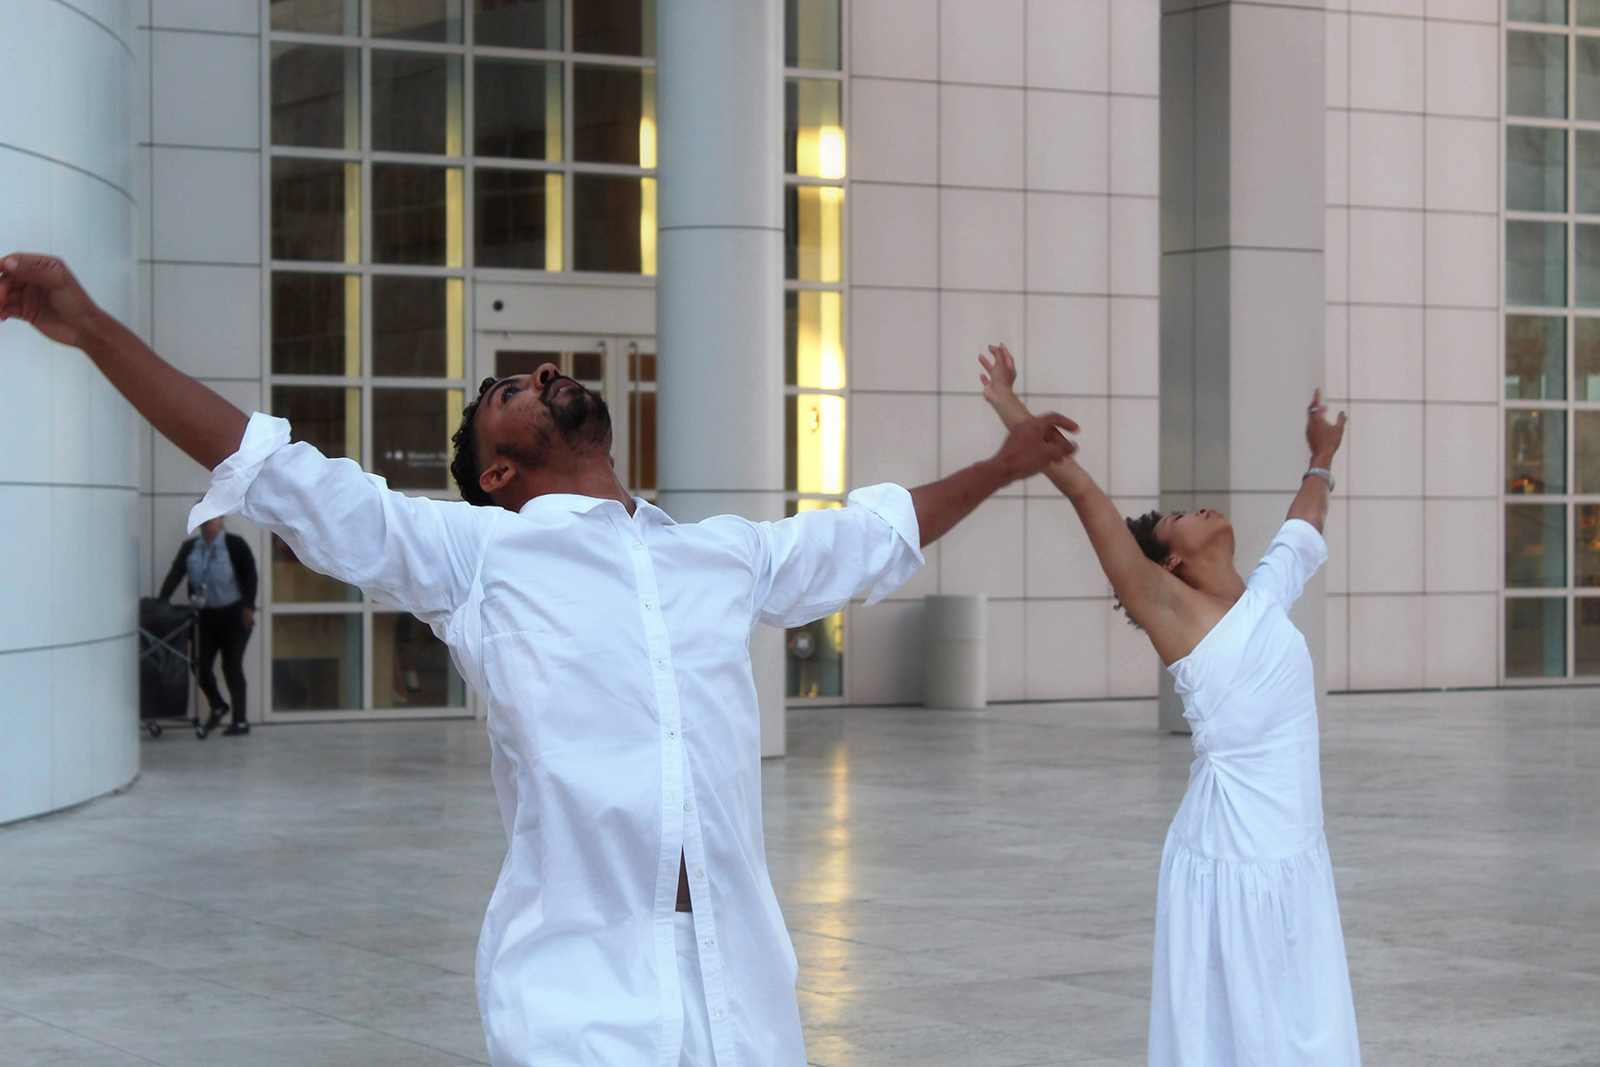 Two Black dancers in white garb reach their arms to the sky, heads thrown back